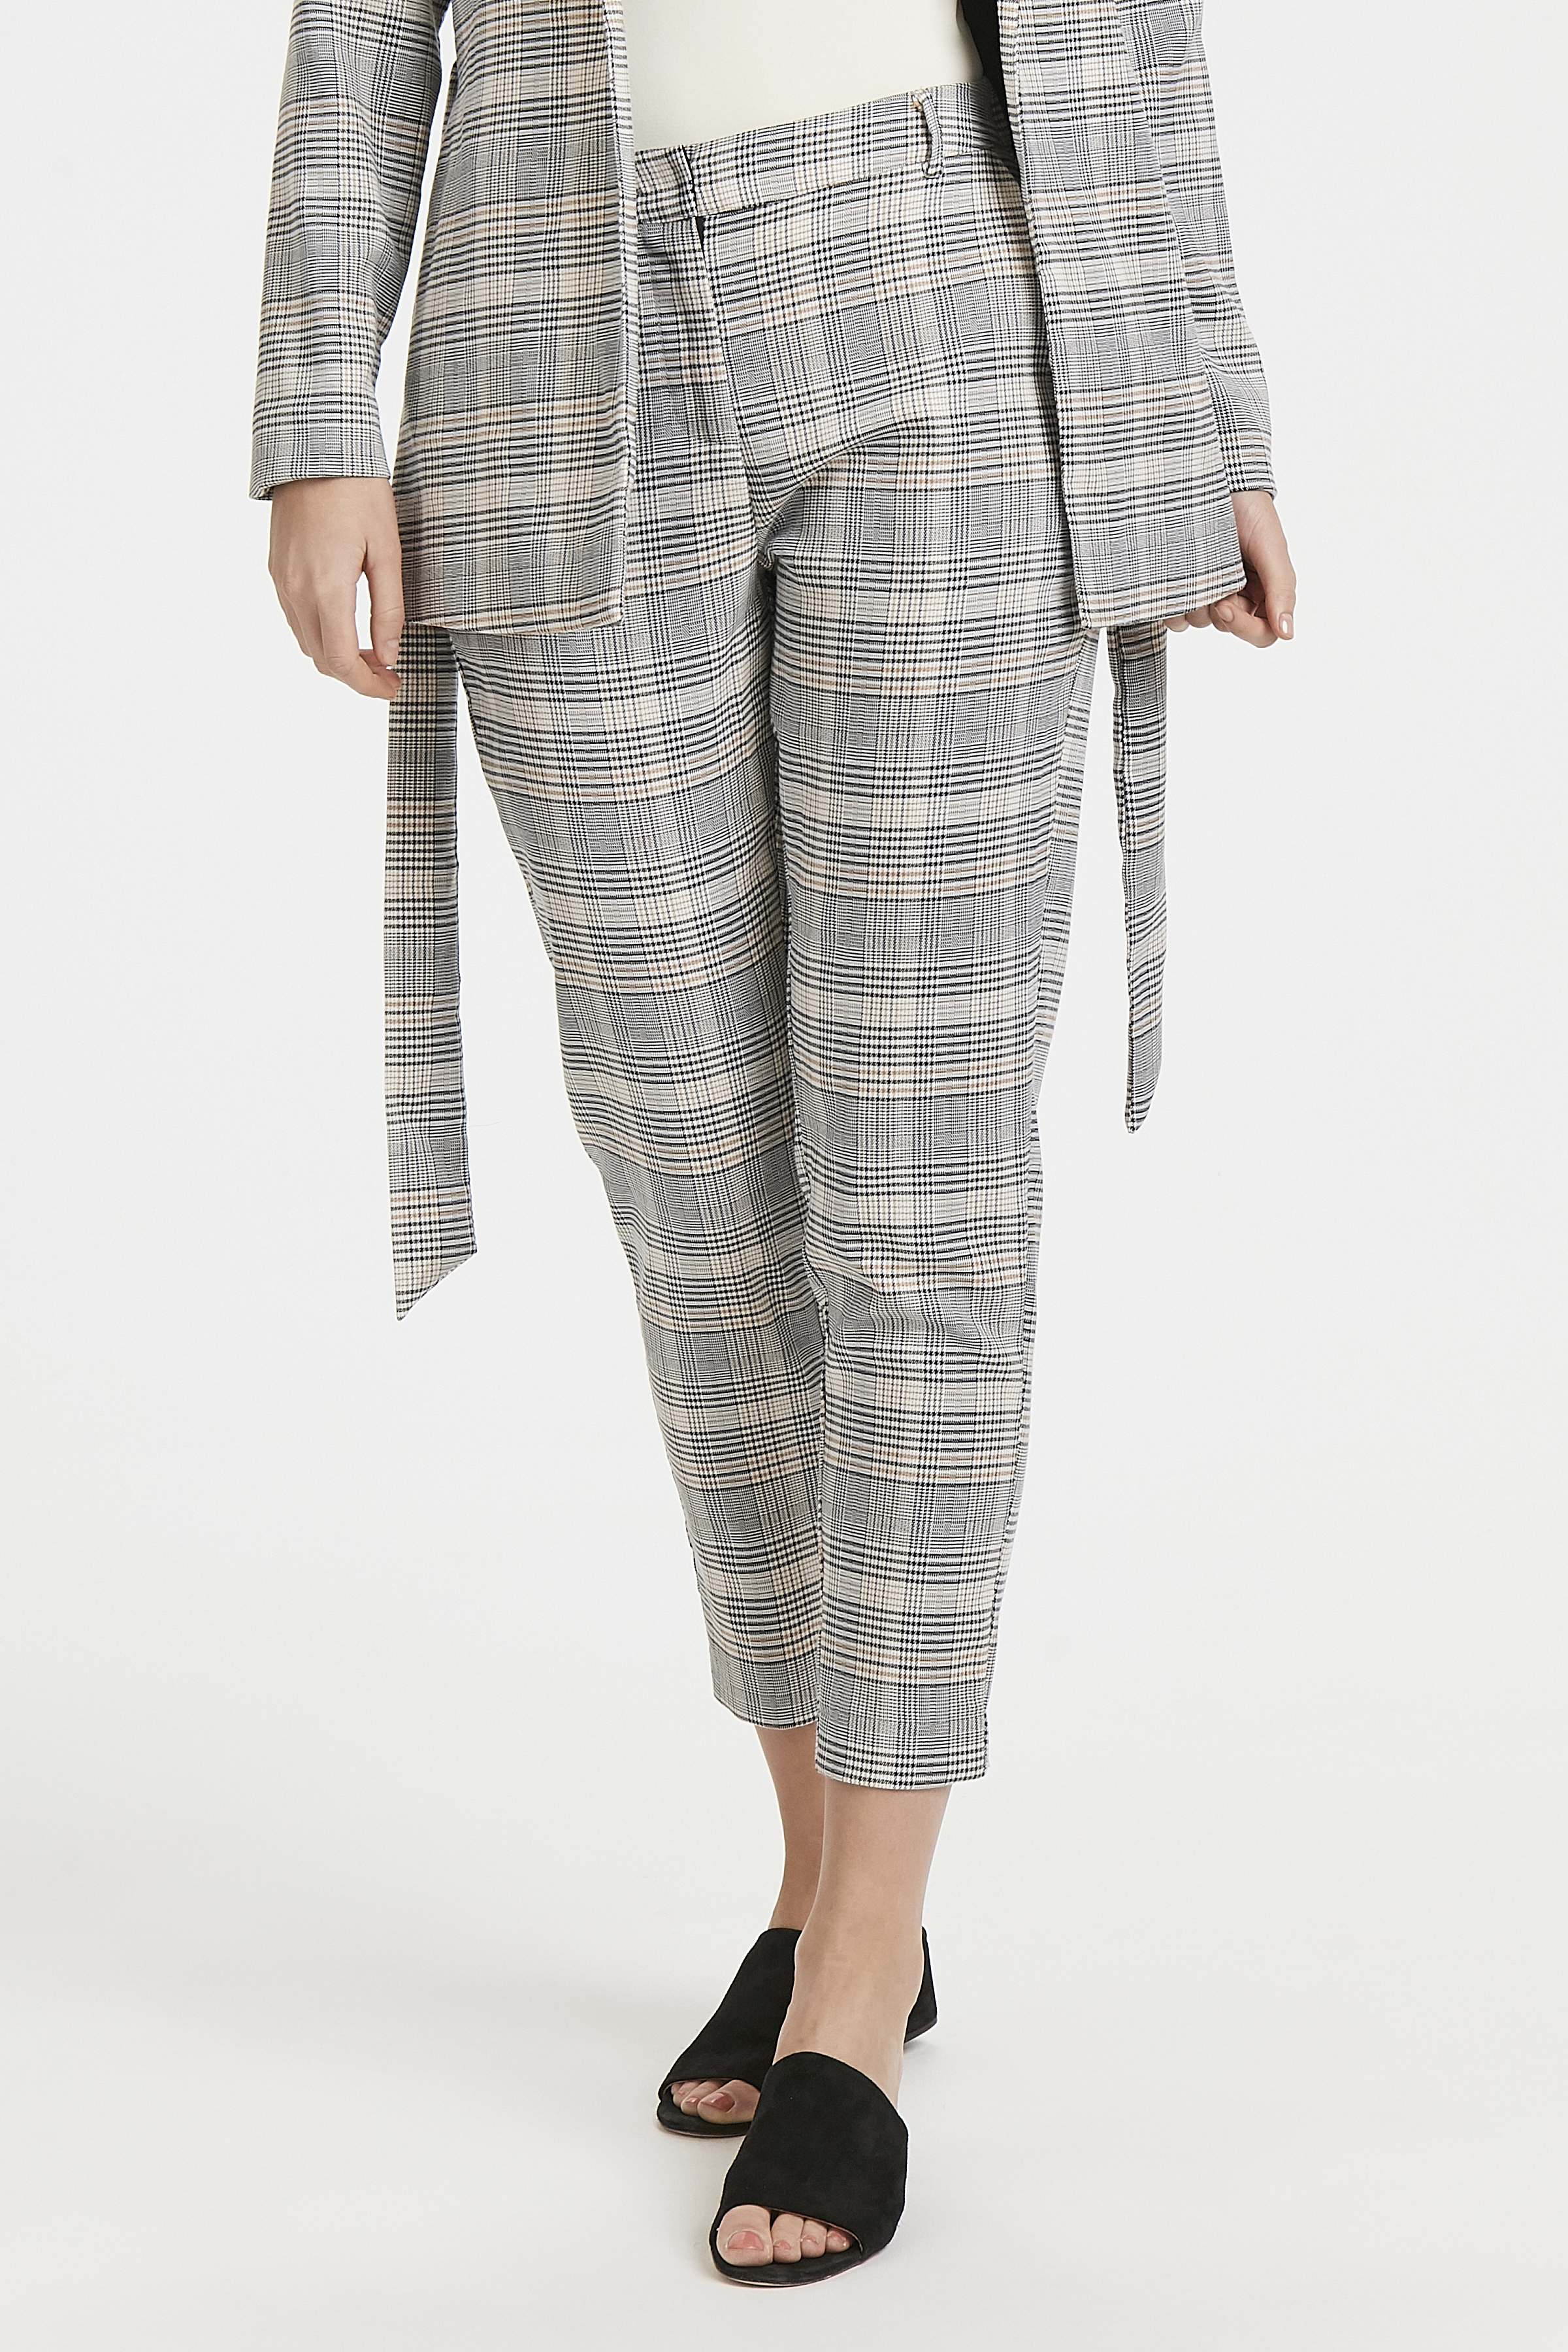 Check combi 1 Pants Casual fra b.young – Køb Check combi 1 Pants Casual fra str. 34-44 her